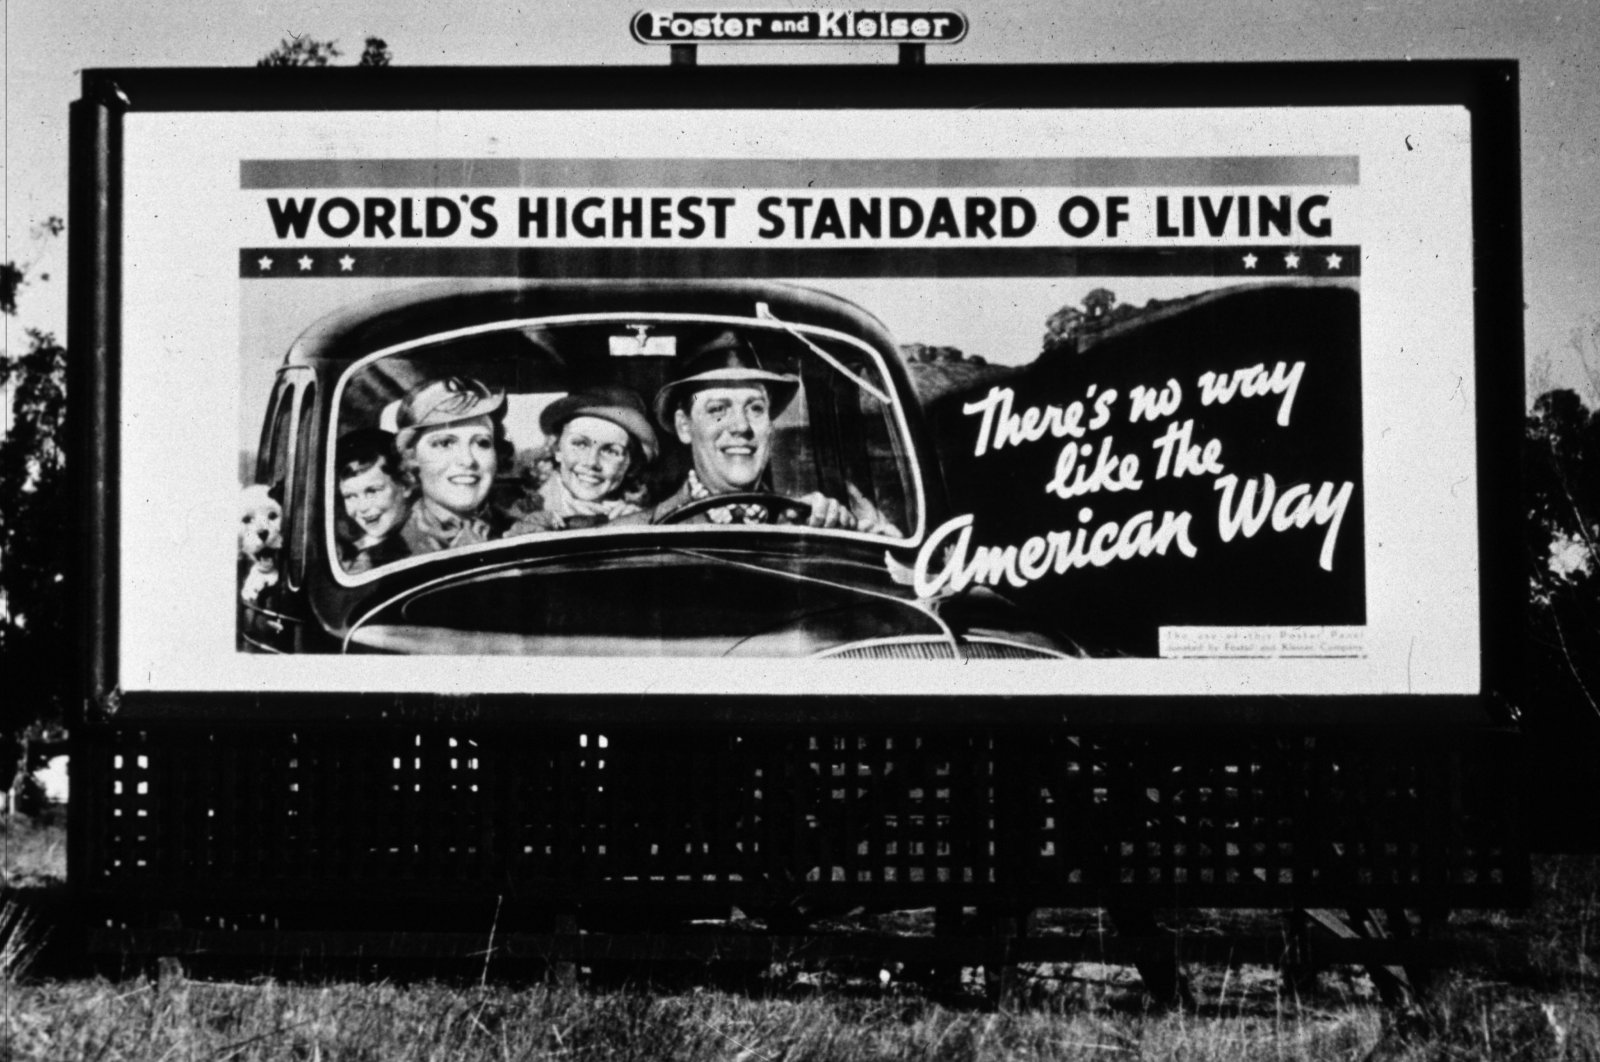 A billboard promoting American life standards as a campaign against the fallouts of the Great Depression, on Highway 99 in California, the U.S., March 1937. (Photo by Getty Images)